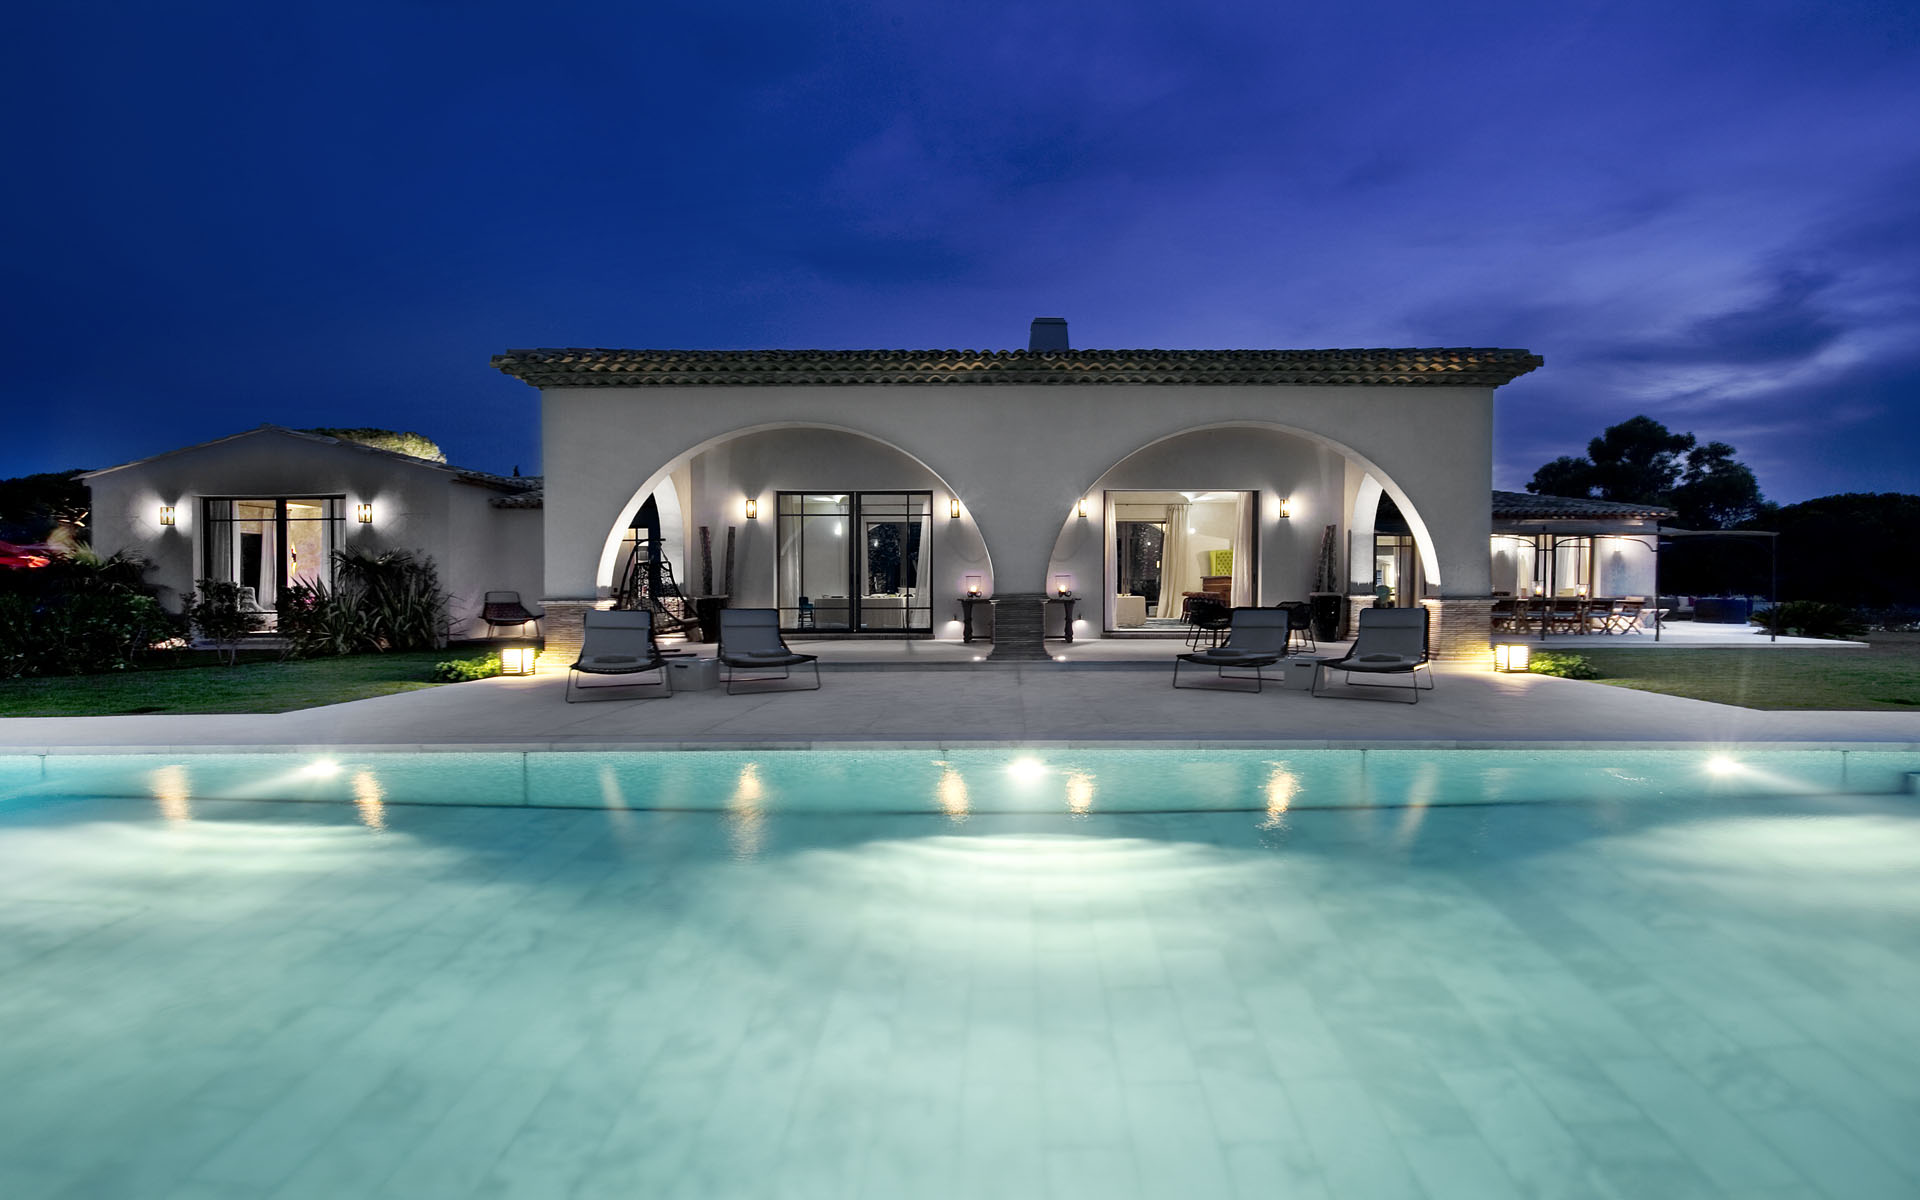 St tropez 39 s luxury villa peninsula 1 for Pool design for villa